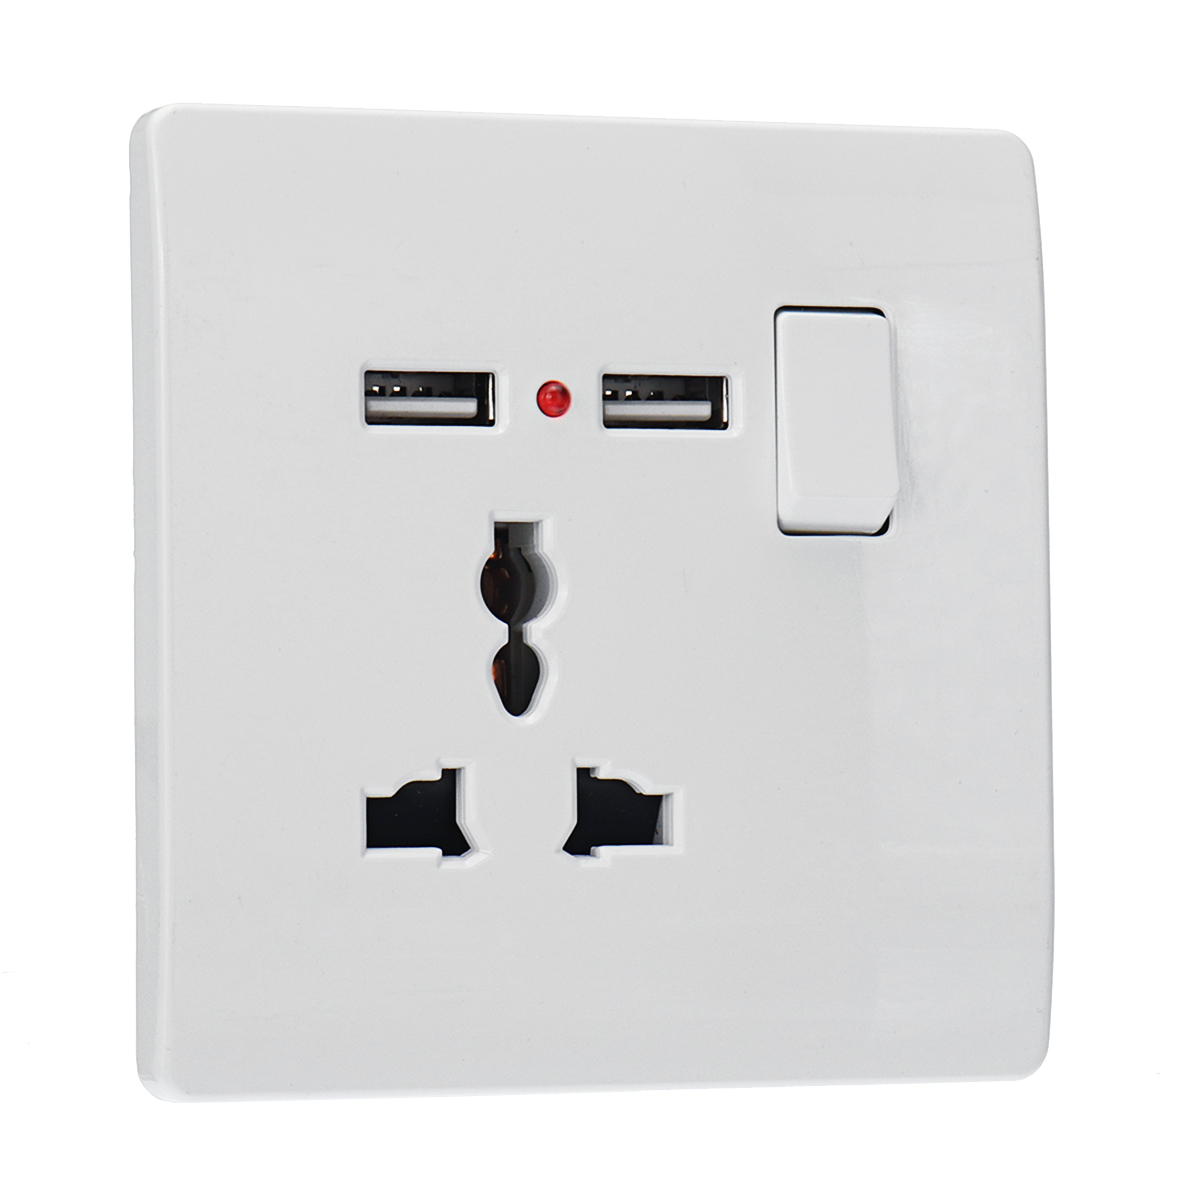 13A Wall Power Socket Switch Dual USB Charging Ports Connection Outlet Plate Plug Home